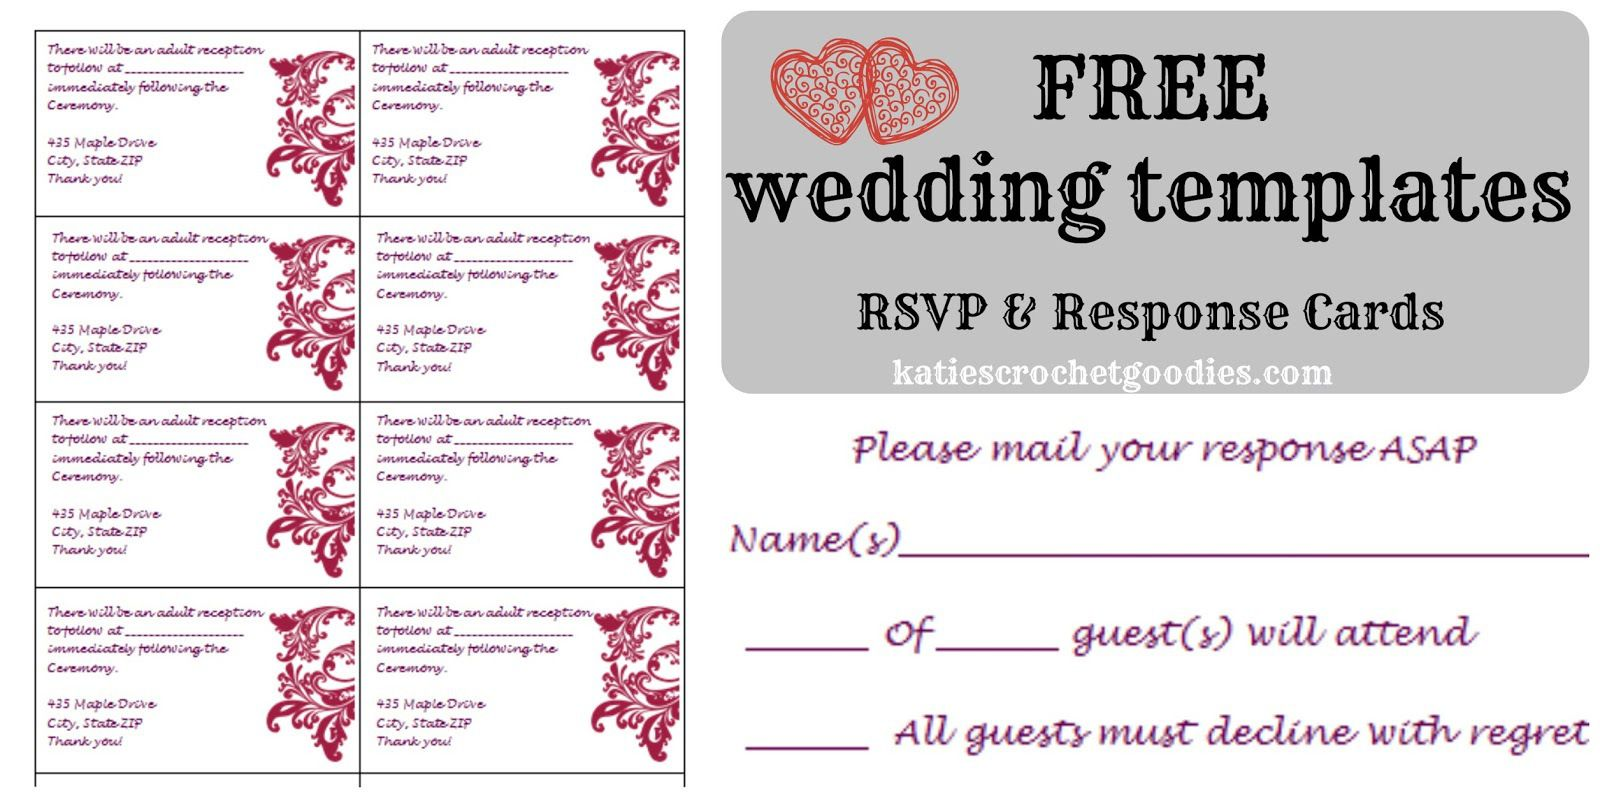 Free Wedding Rsvp Response Card Template Templat Wedding Invitations Printable Templates Rsvp Wedding Cards Free Wedding Templates